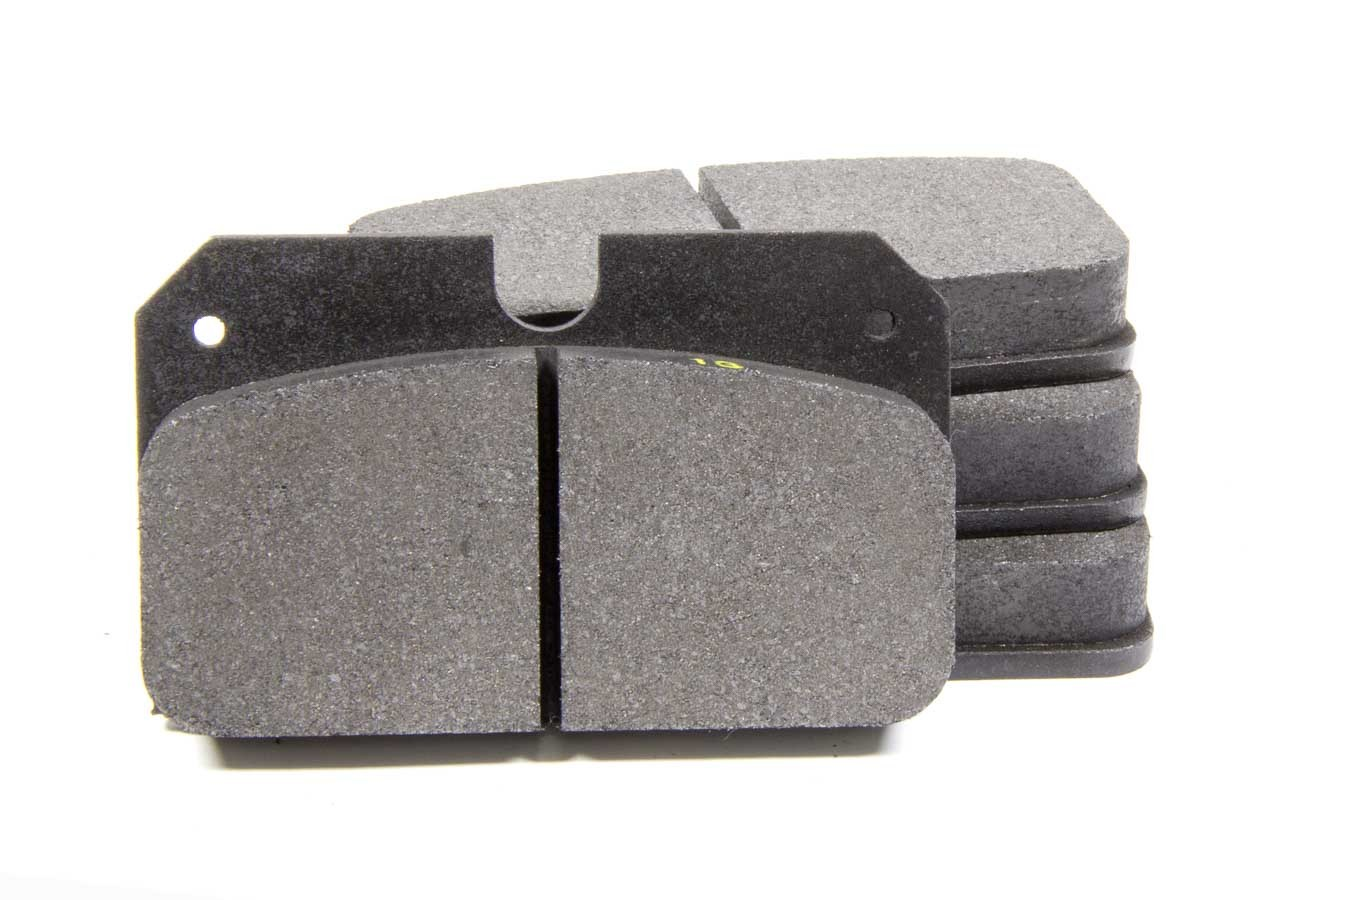 Performance Friction 7754-13-16-44 Brake Pads, 13 Compound, All Temperatures, Outlaw / Wilwood B-Bolt Calipers, Set of 4